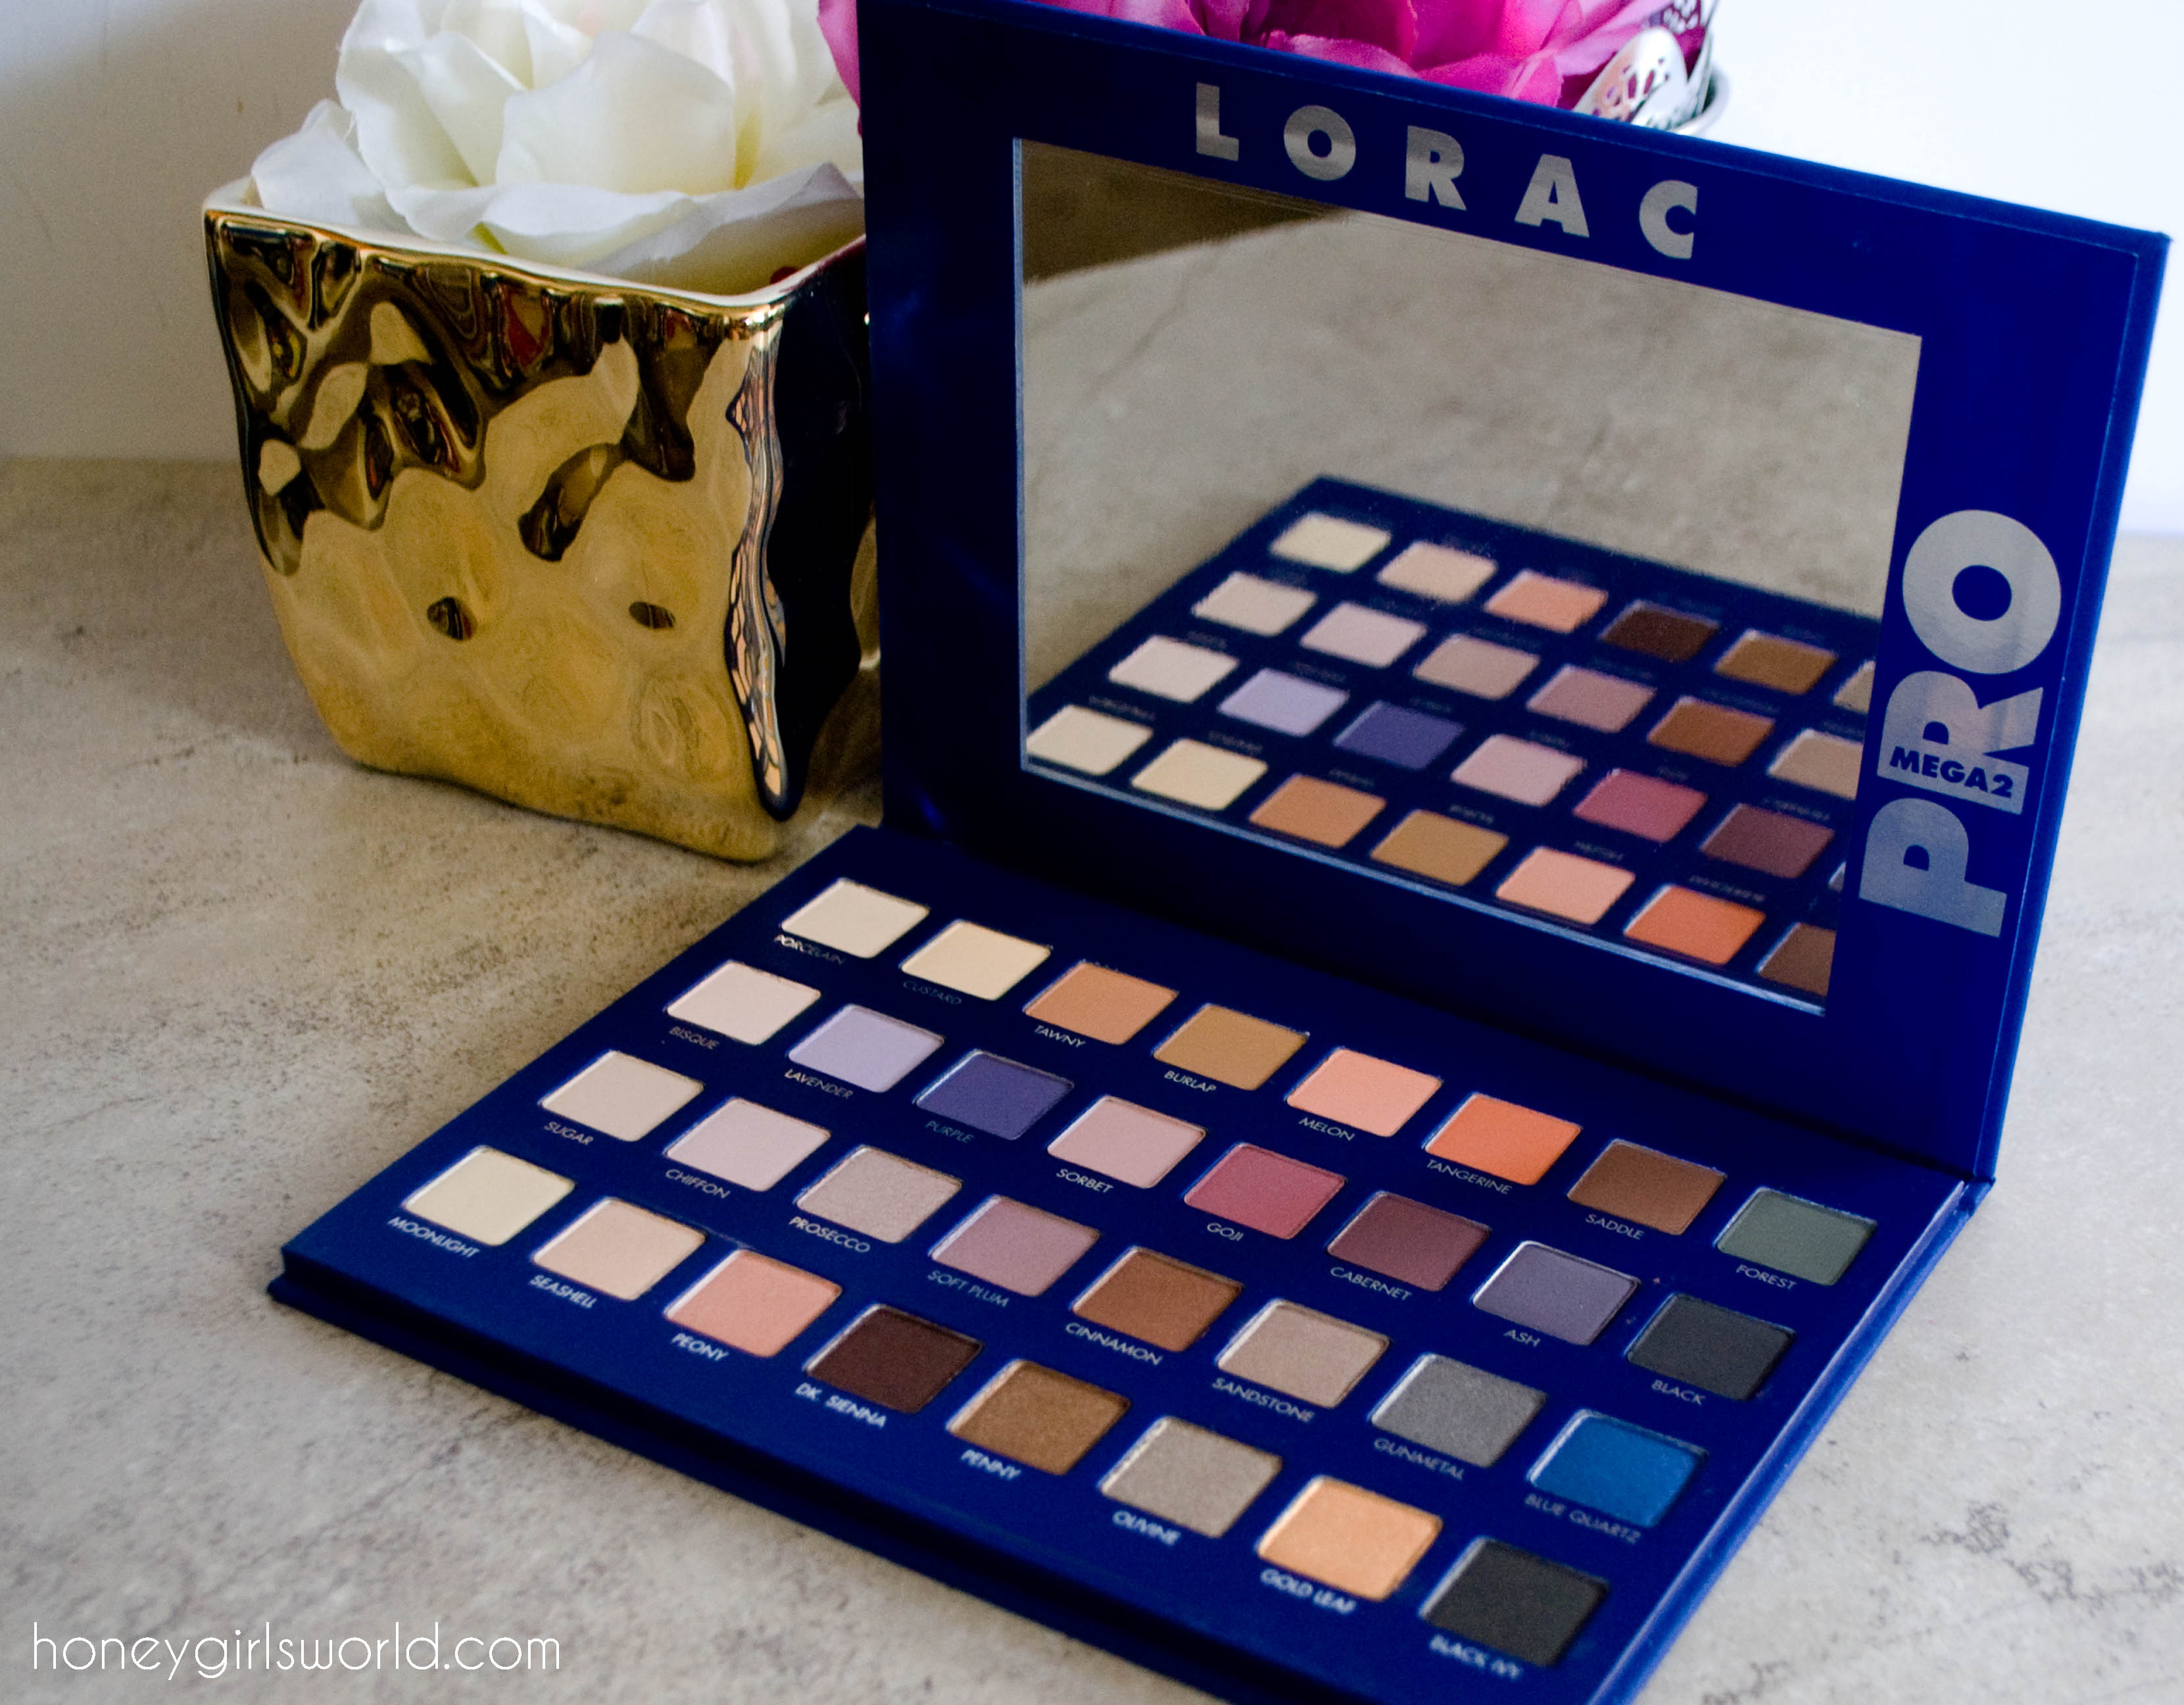 Great Gift For Your Favorite Makeup Lover - Lorac Mega Pro 2